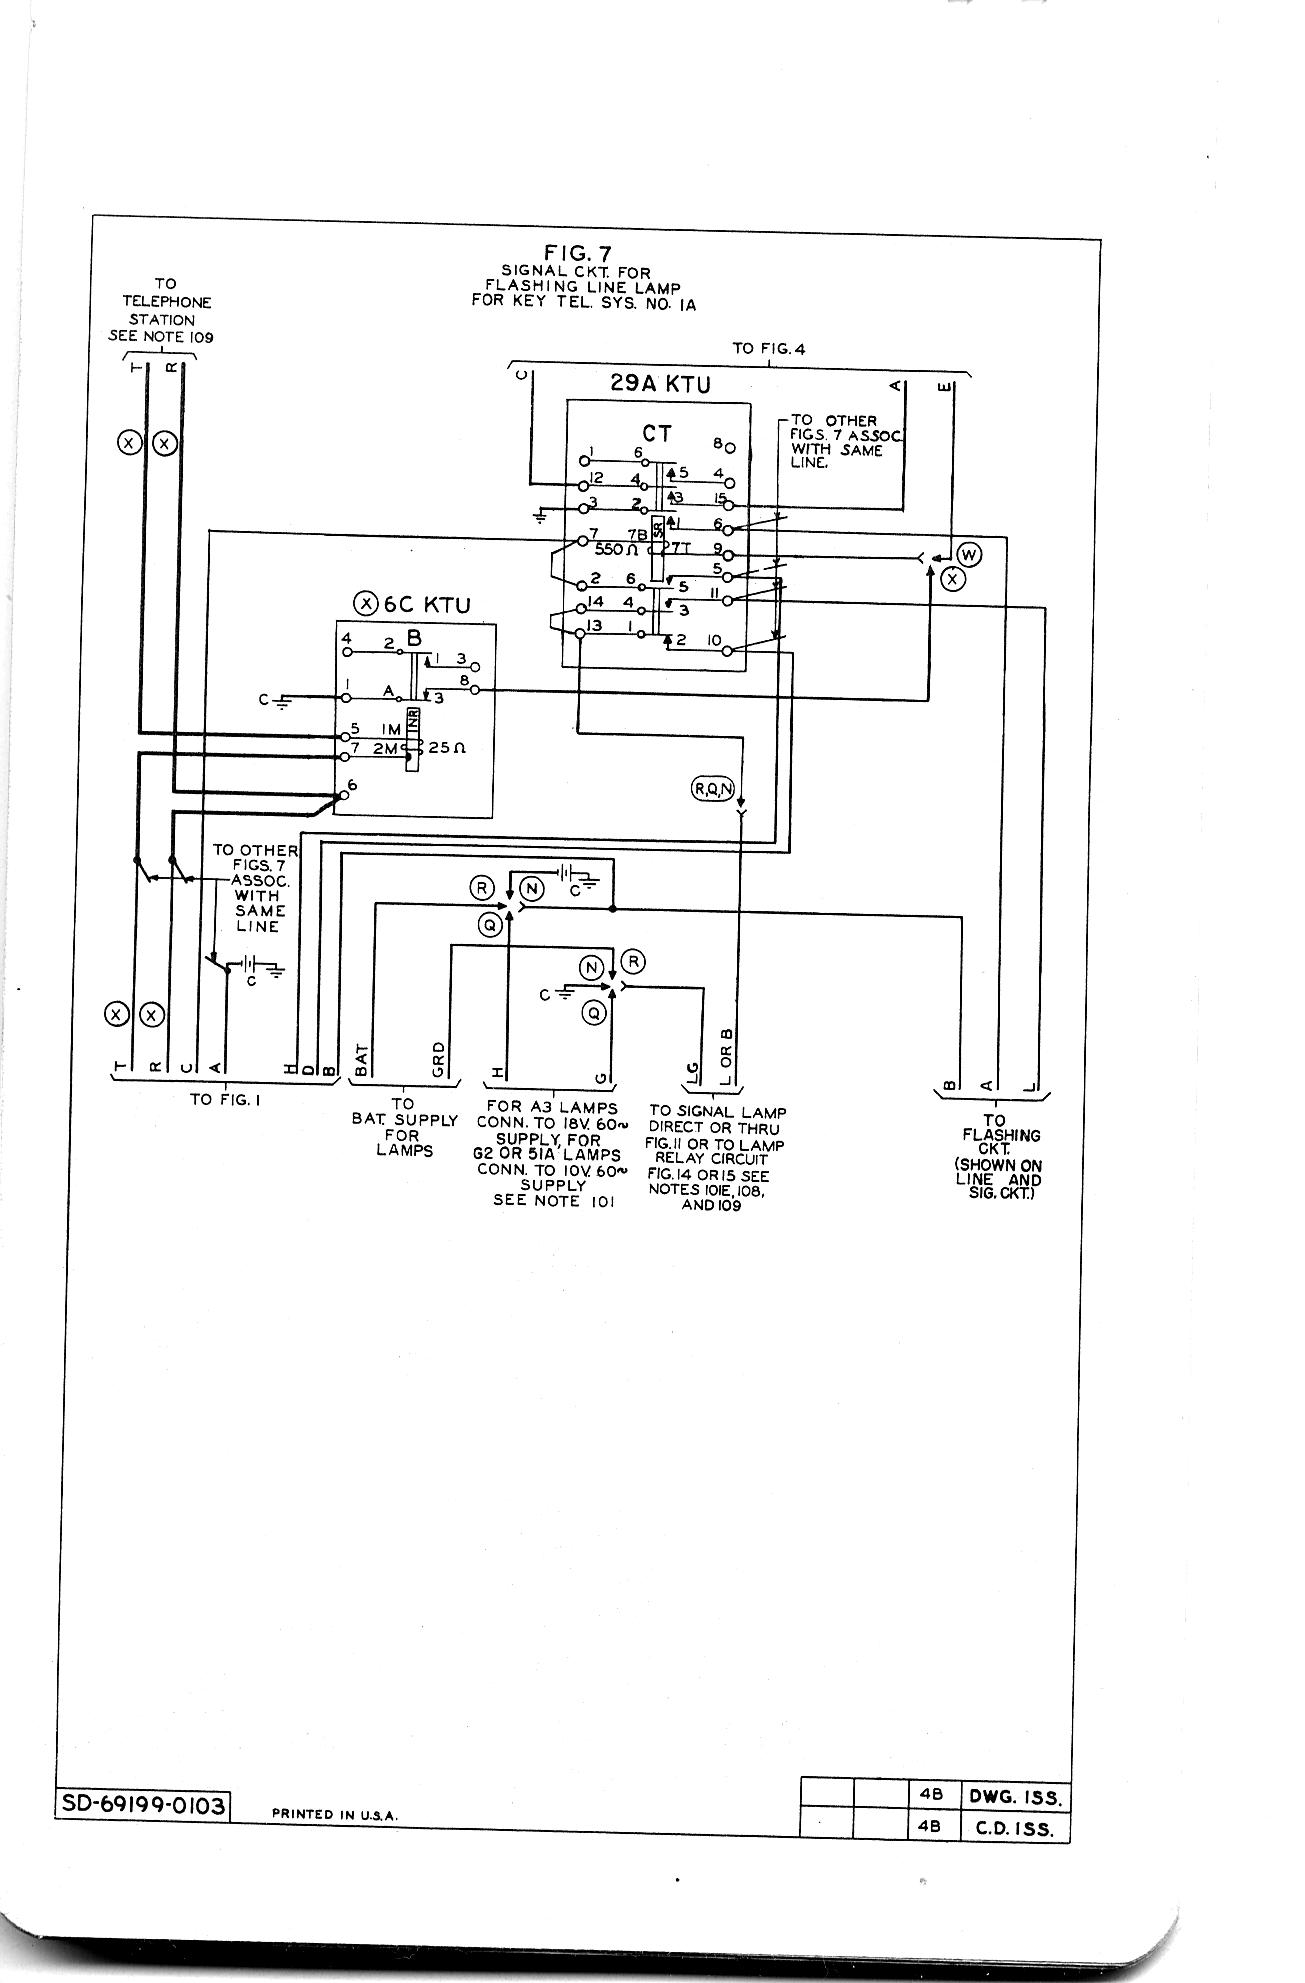 Western Electric Dial Phone Wiring Diagram Franklin